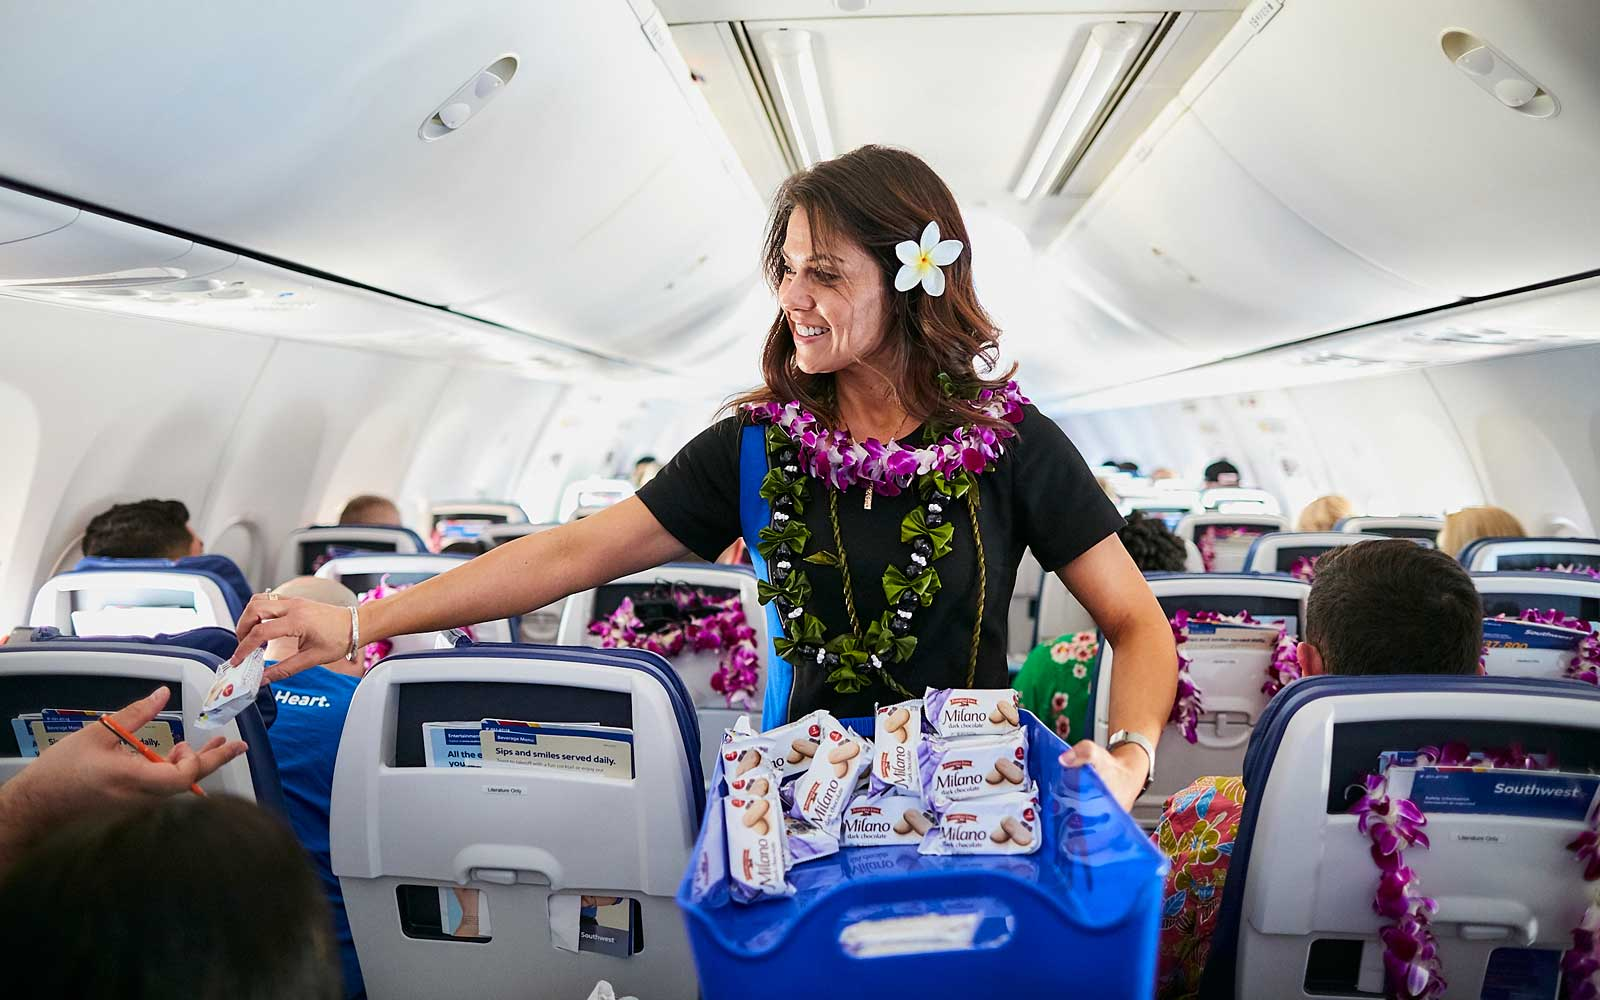 Southwest Airlines - Oakland to Hawaii Inaugural Flight